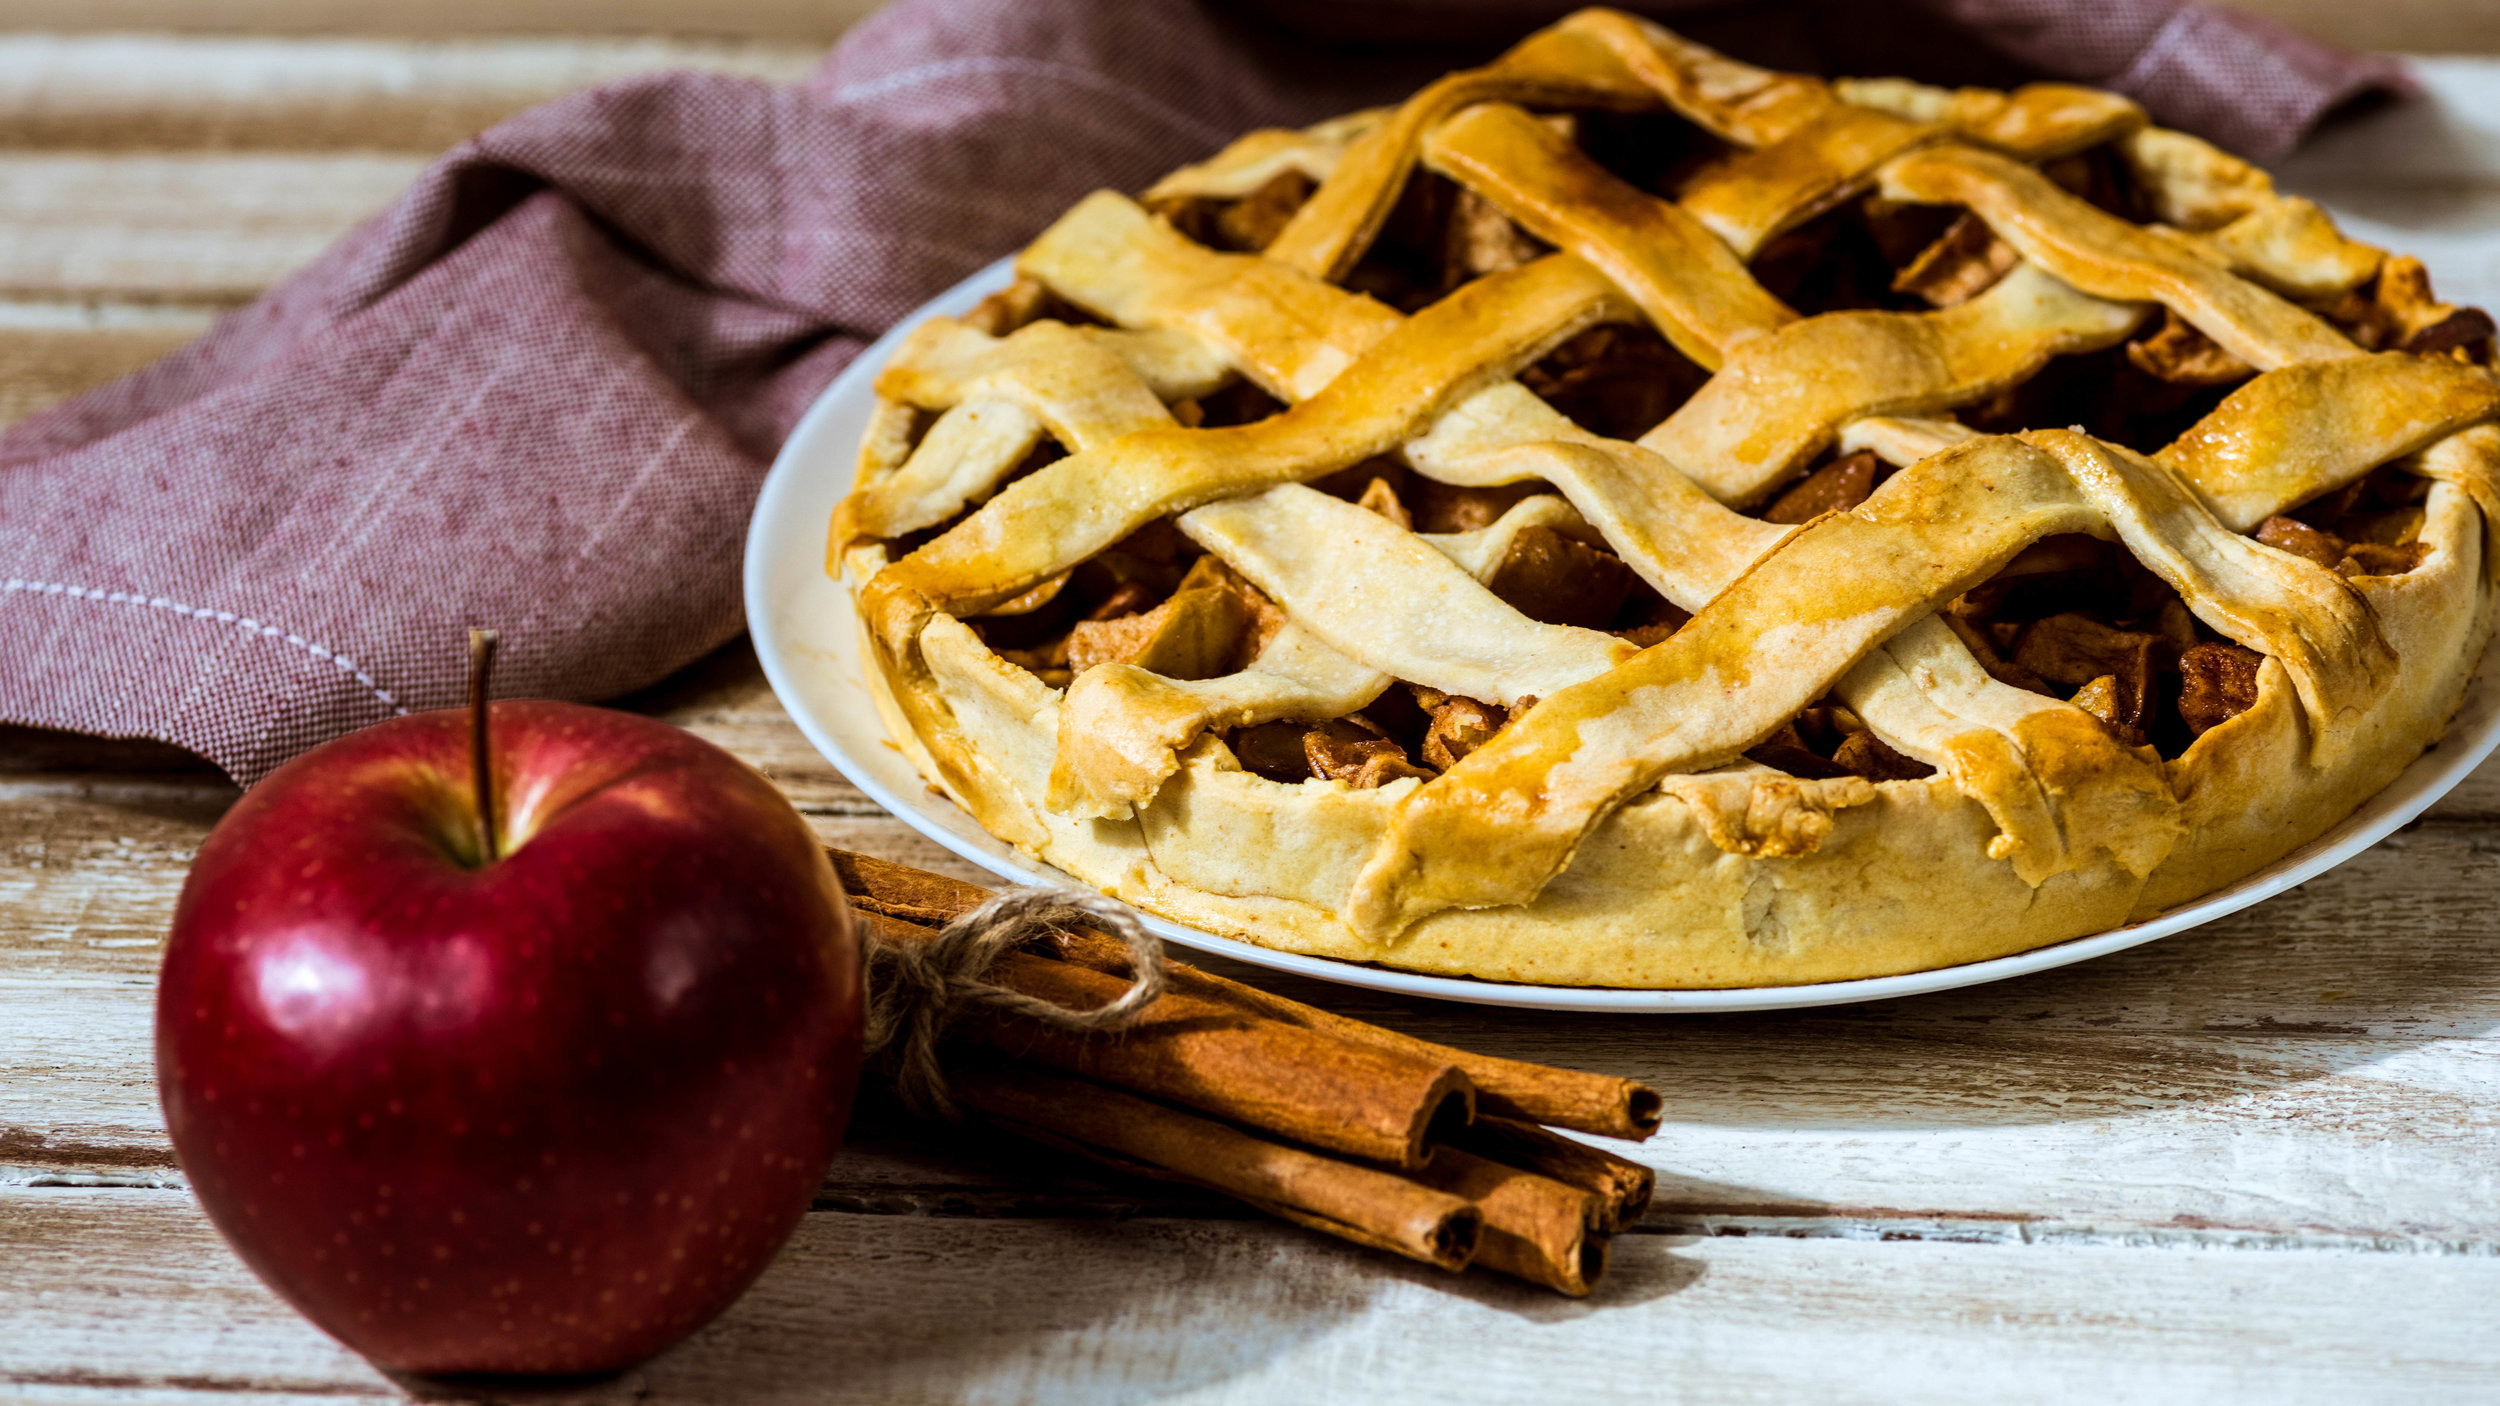 apple-pie-16x9-alr-2-169.jpg